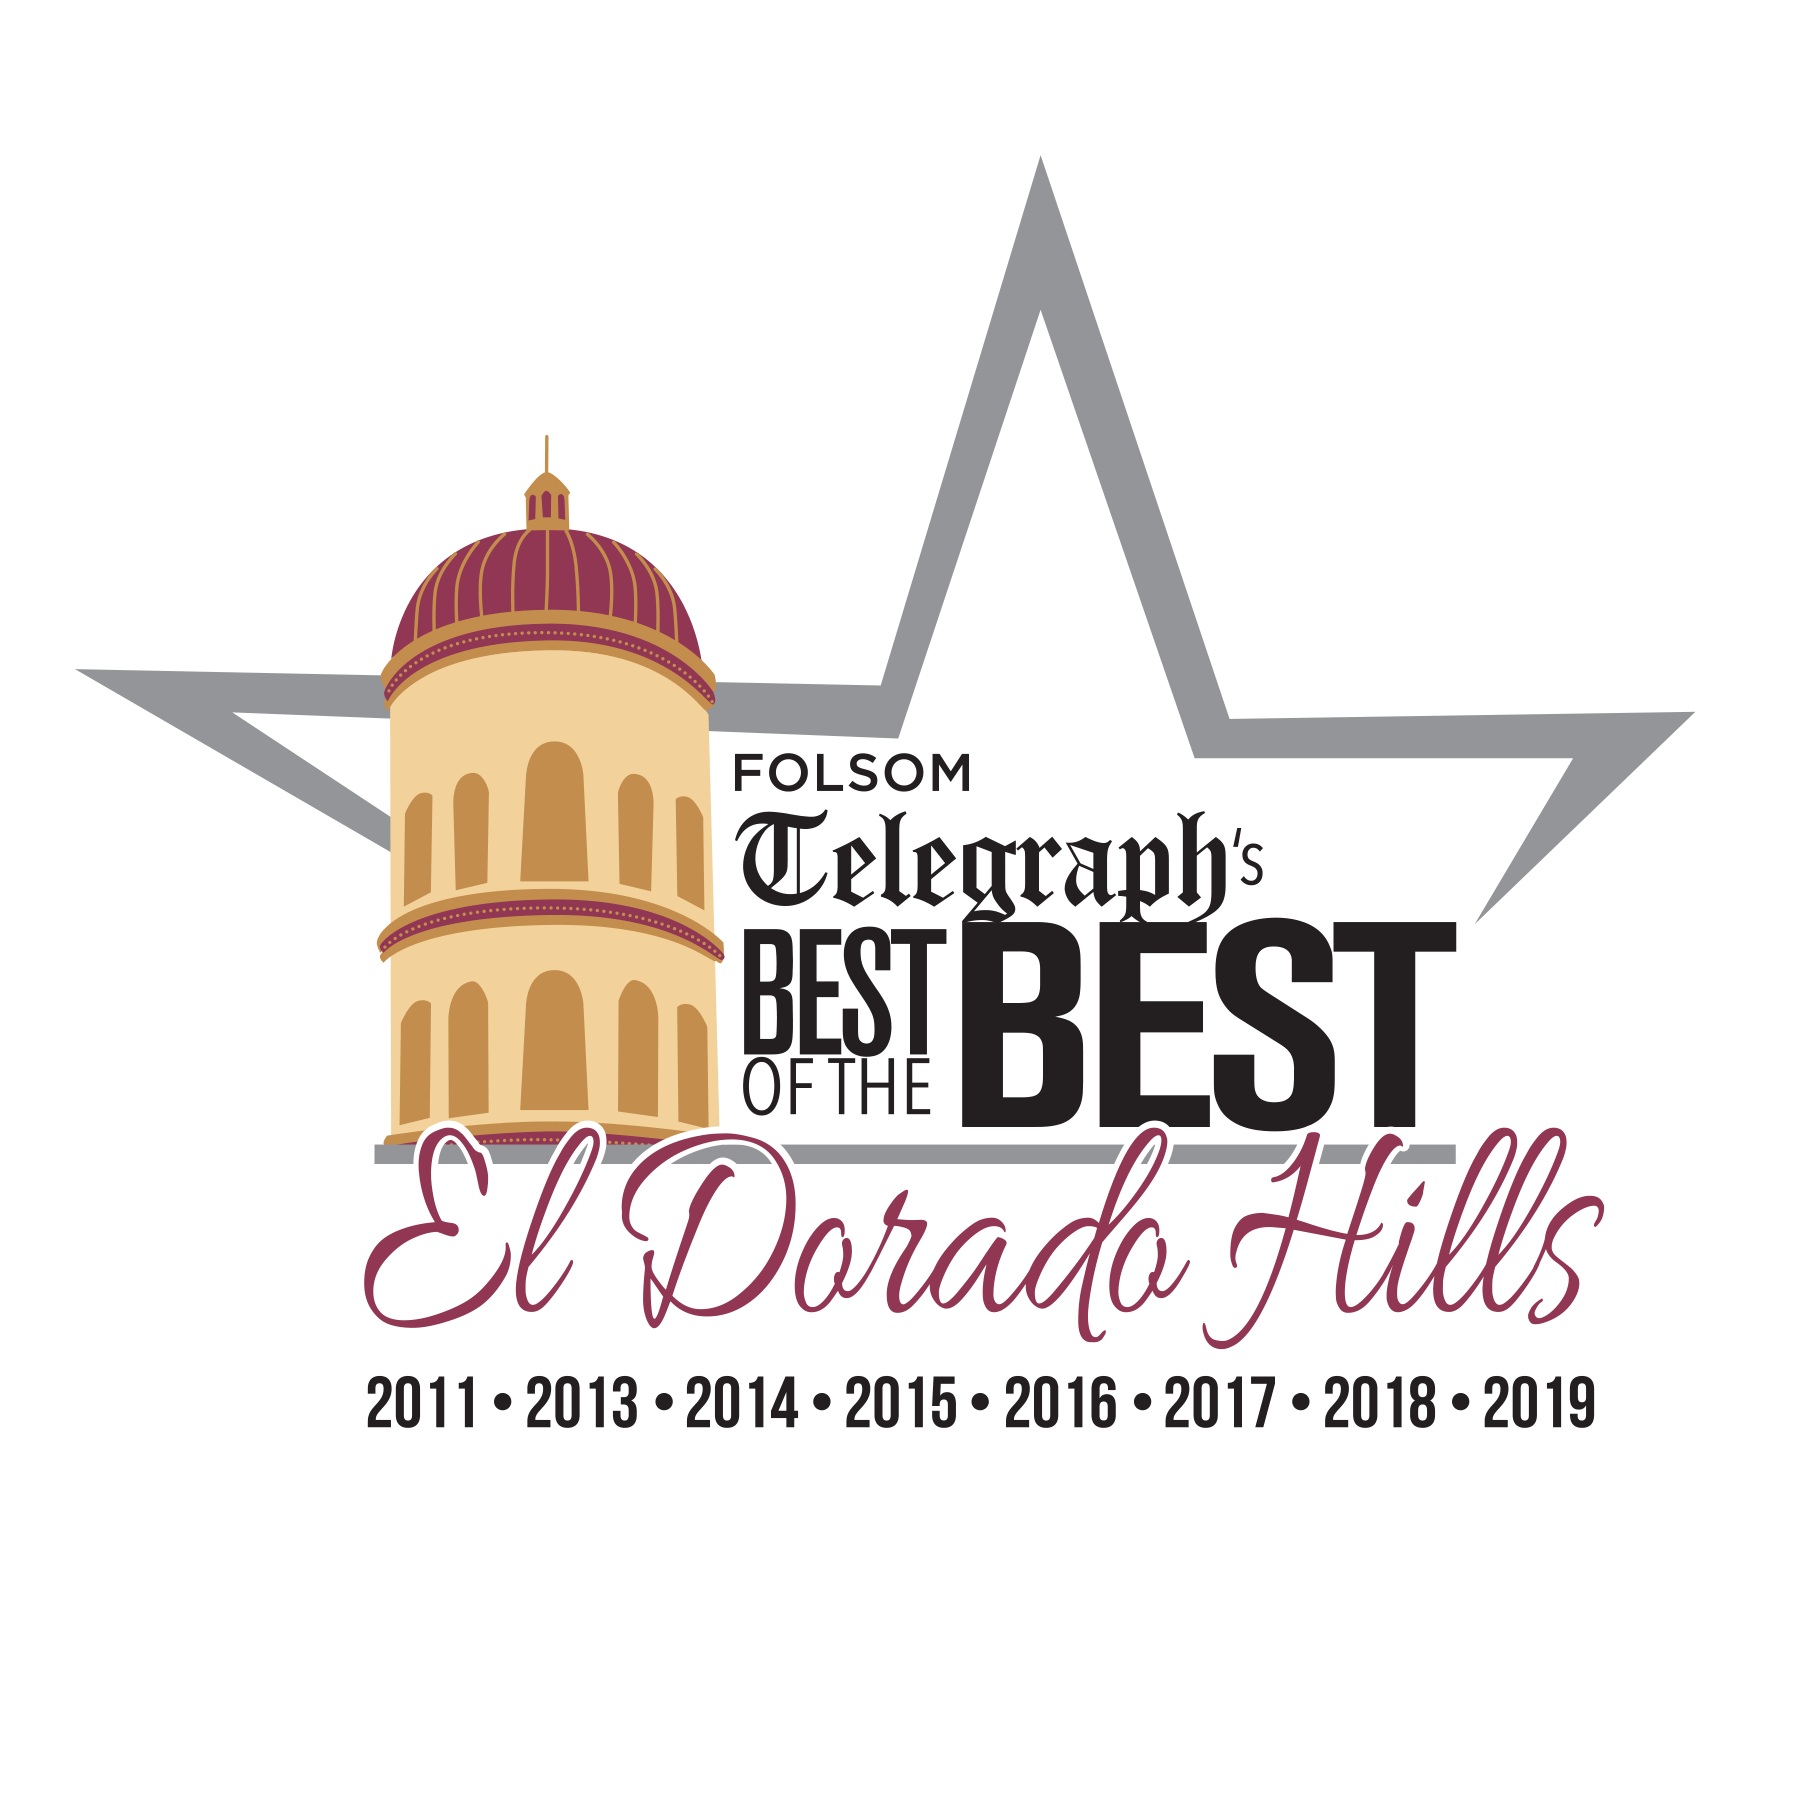 best of graphic 2019 - We love doing orthodontics in El Dorado Hills, CA